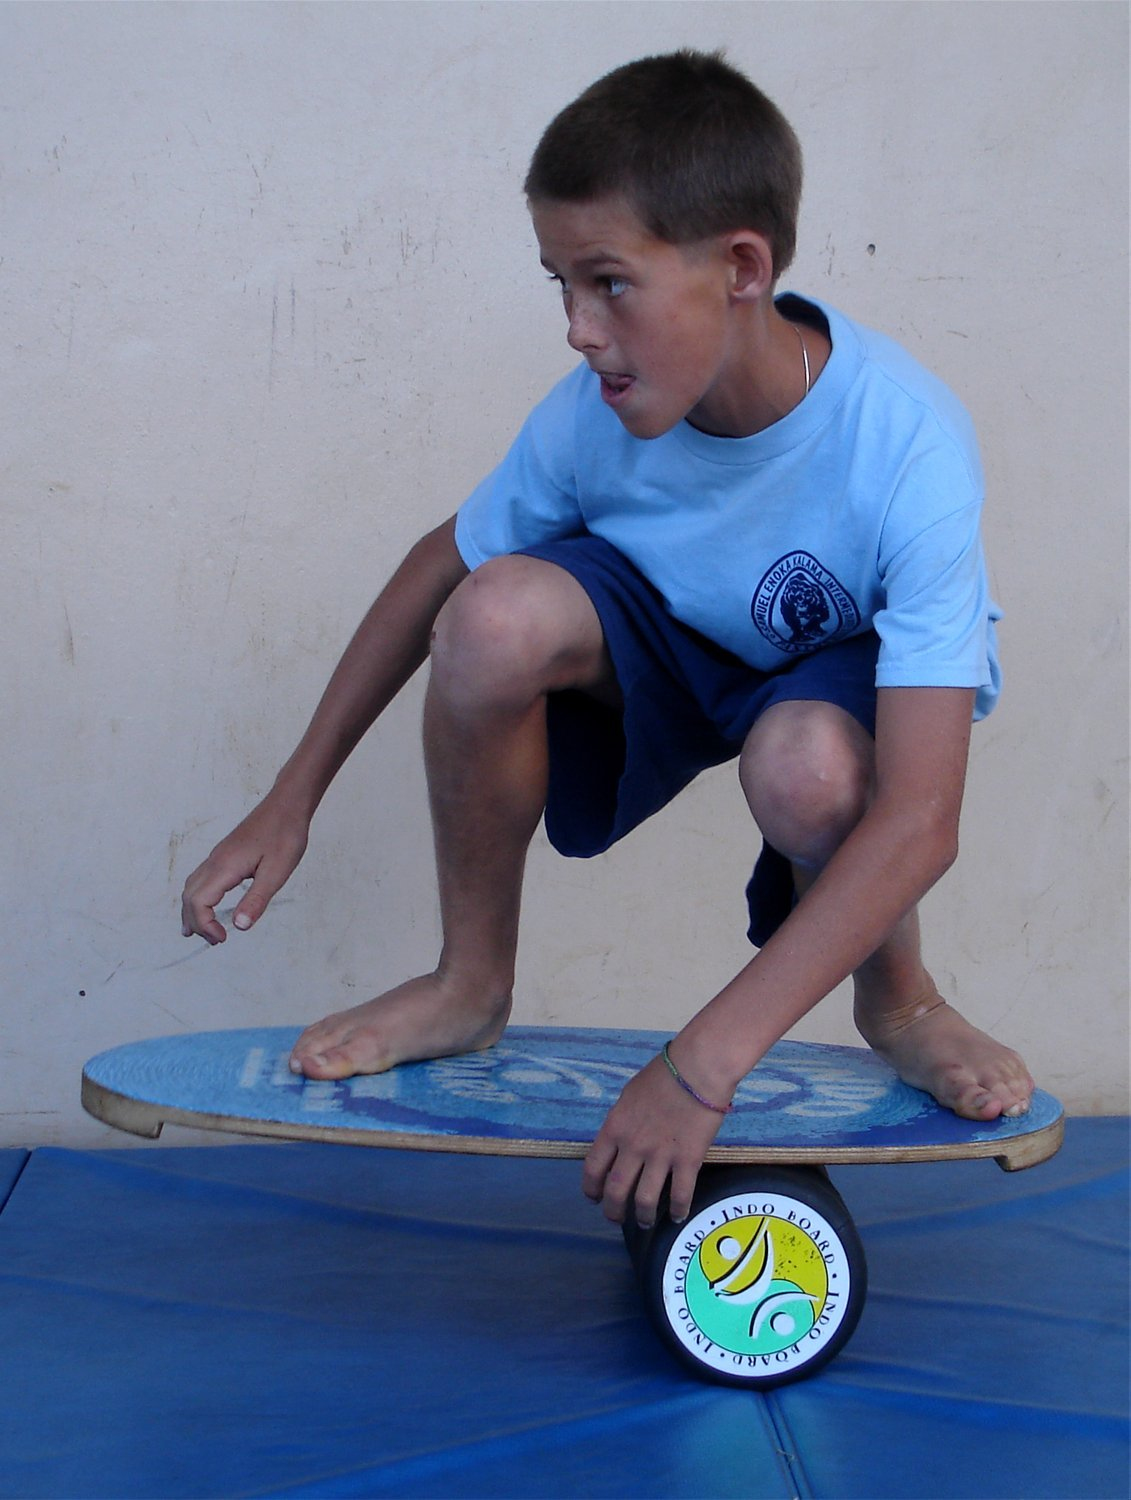 """INDO BOARD Original Balance Board with 6.5"""" Roller and 30"""" X 18"""" Non-Slip Deck – Wave Design by INDO BOARD (Image #7)"""